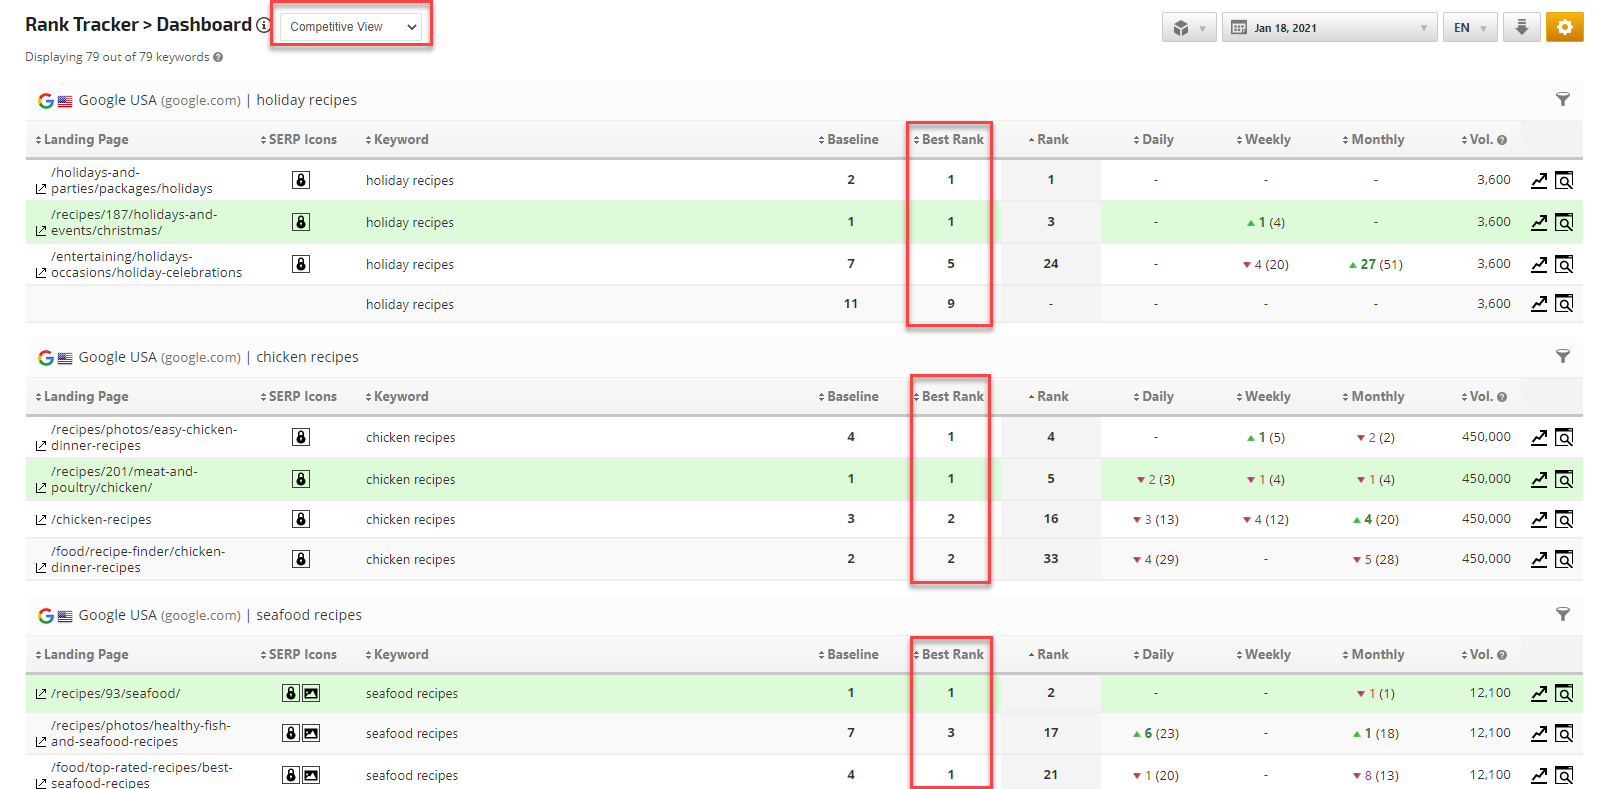 Best Rank in Competitor View of Rank Tracker Dashboard